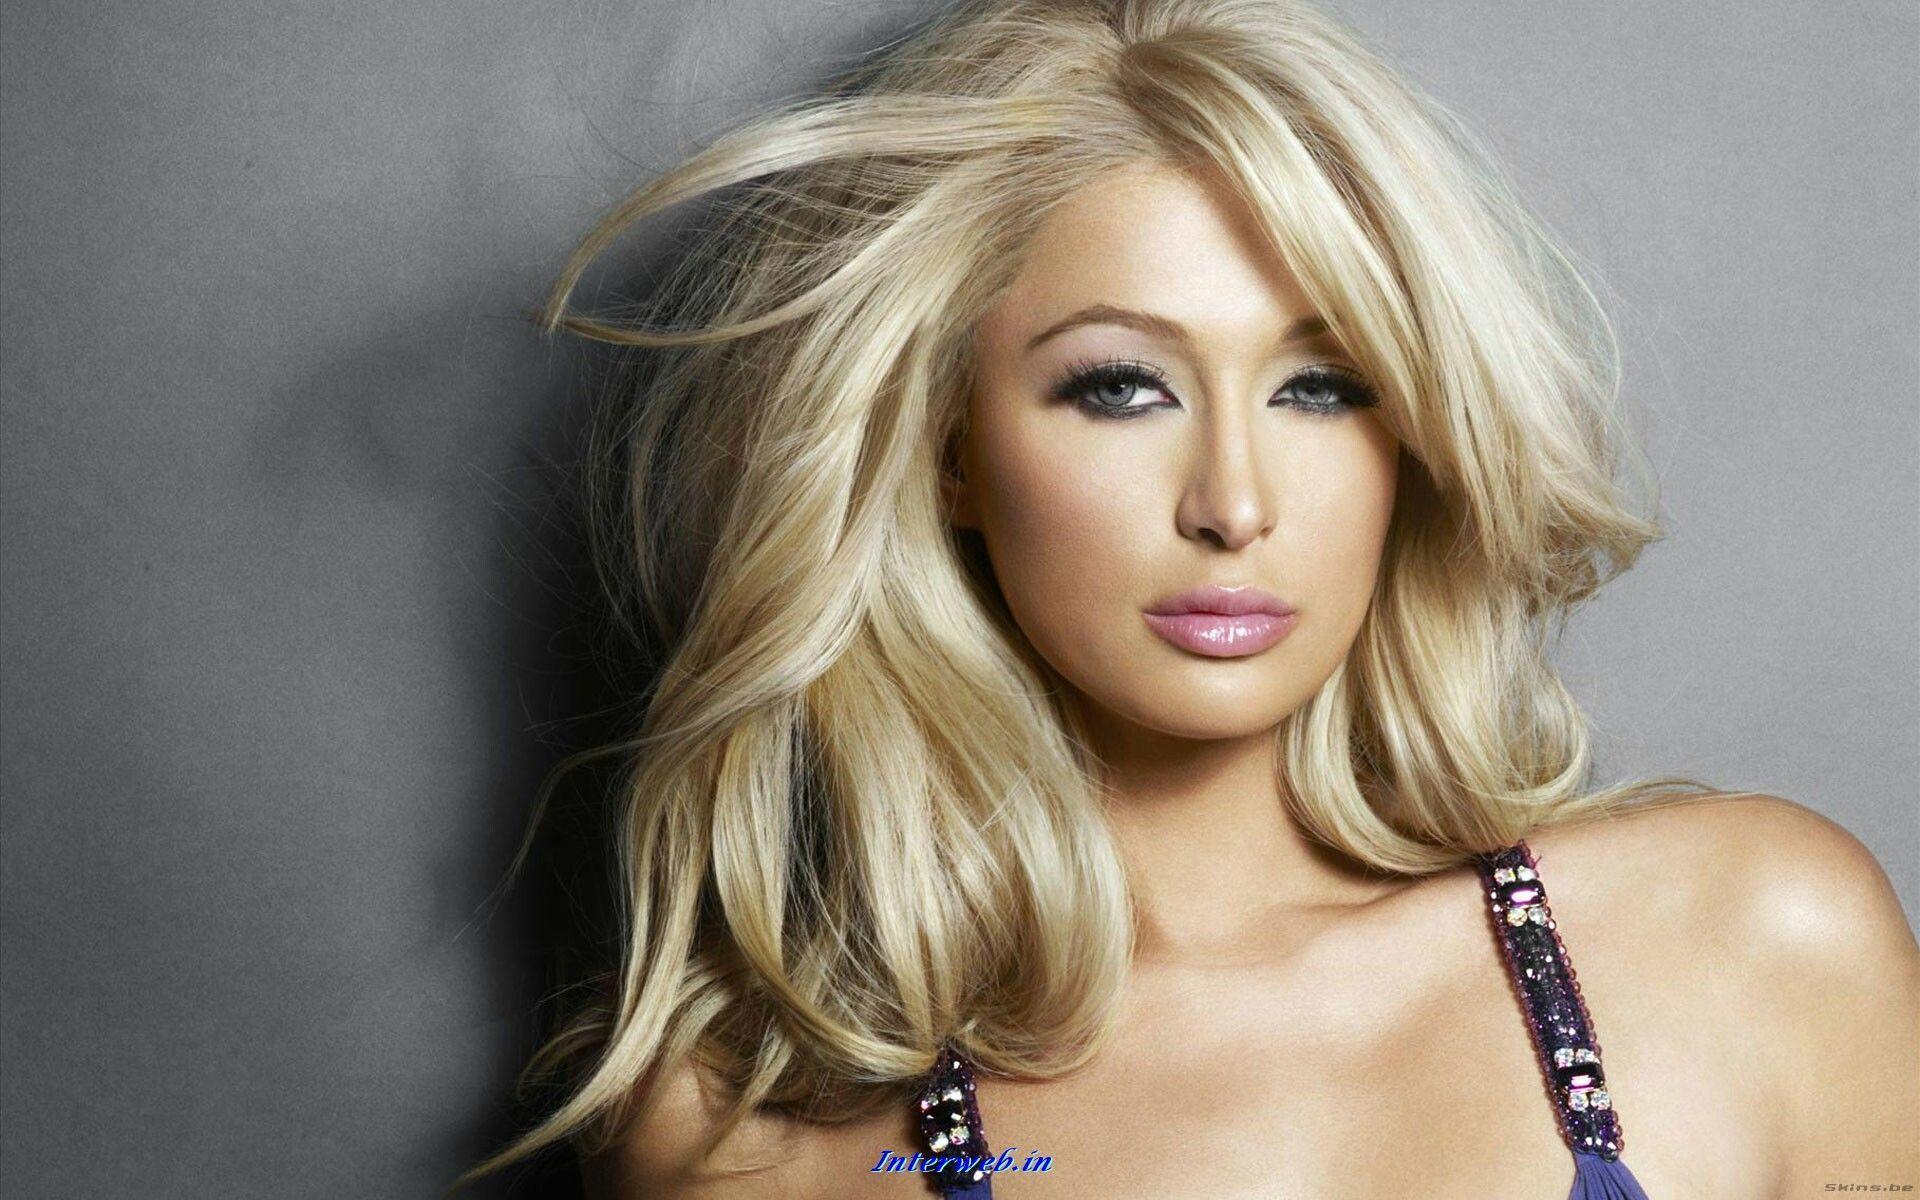 Paris Hilton Wallpapers High Resolution and Quality Download